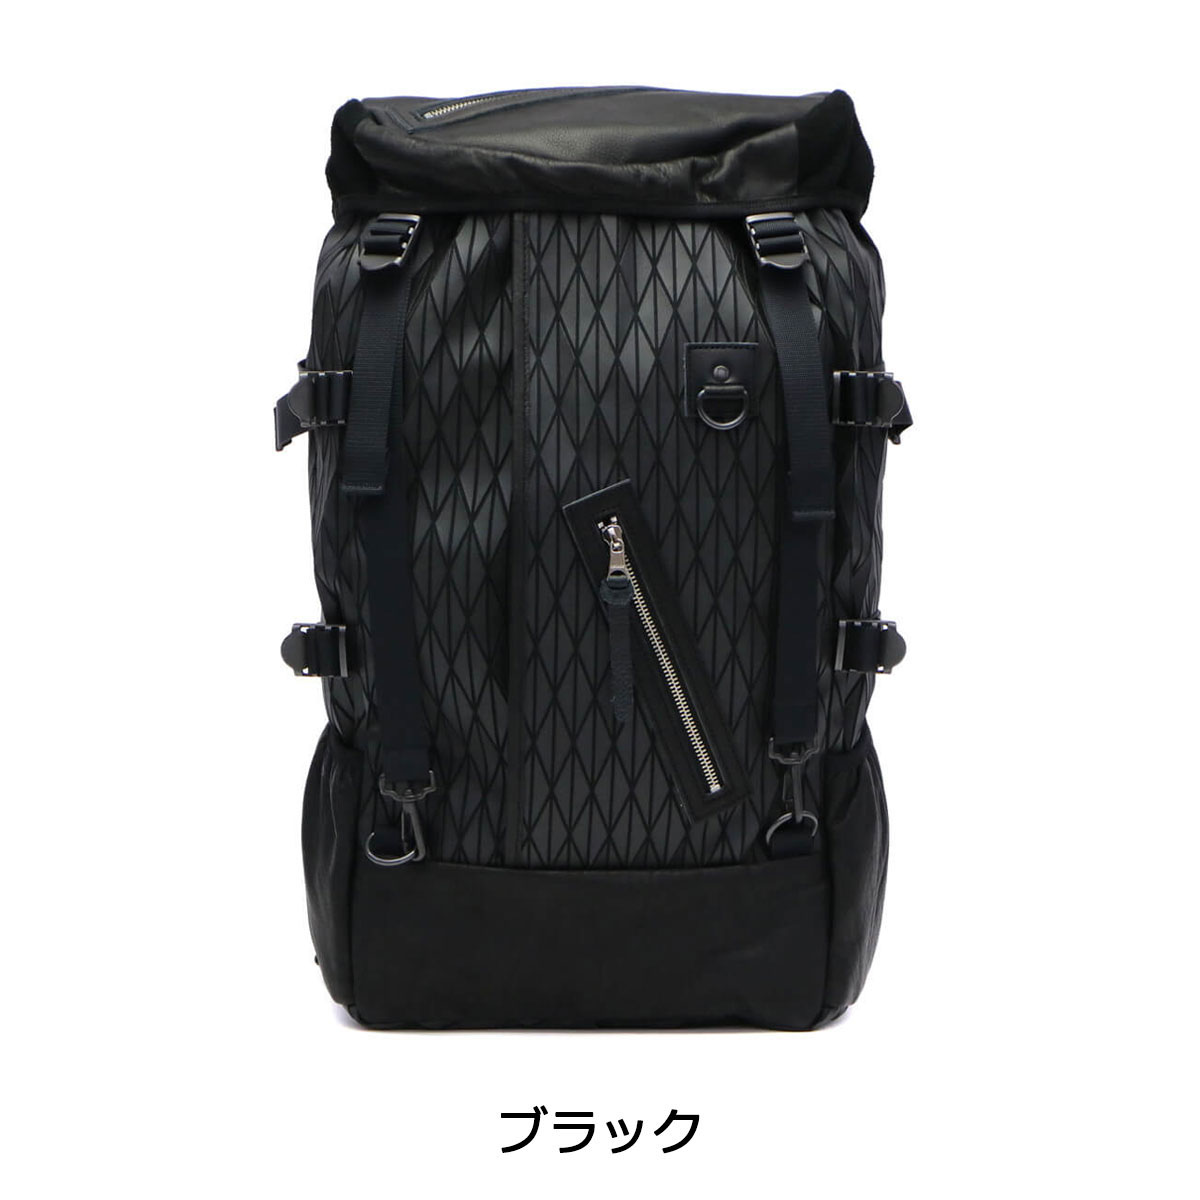 ae9cc49b5 ... DECADE Solid Solid Graphic Print Canvas Backpack Men's Backpack  Stereoscopic Print Canvas B4 DCD-01104 ...